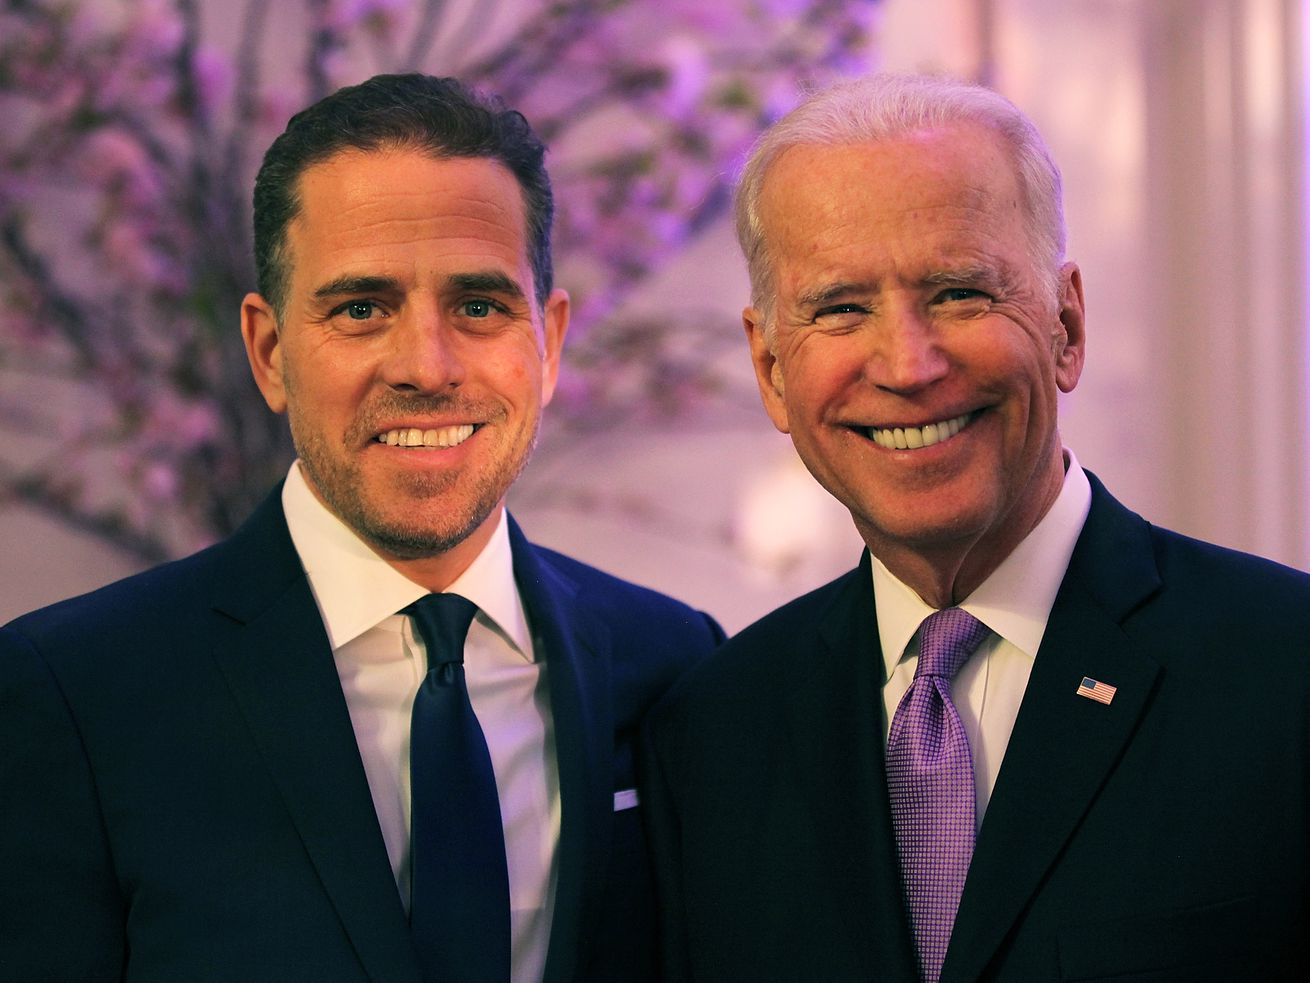 Hunter Biden and Joe Biden.